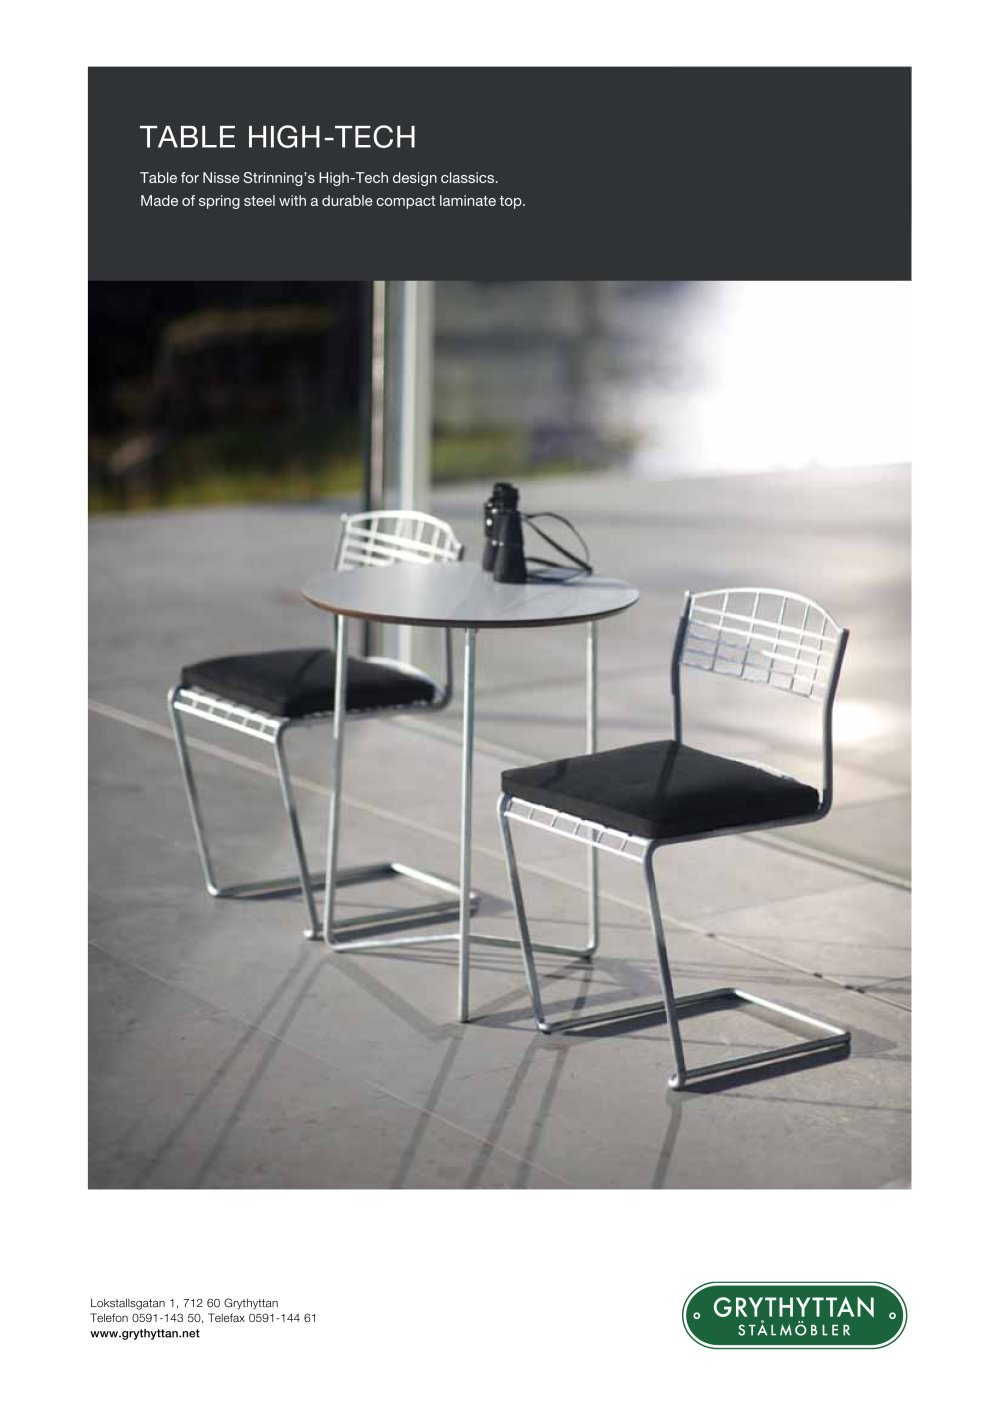 table high-tech - GRYTHYTTAN - PDF Catalogues | Documentation ...